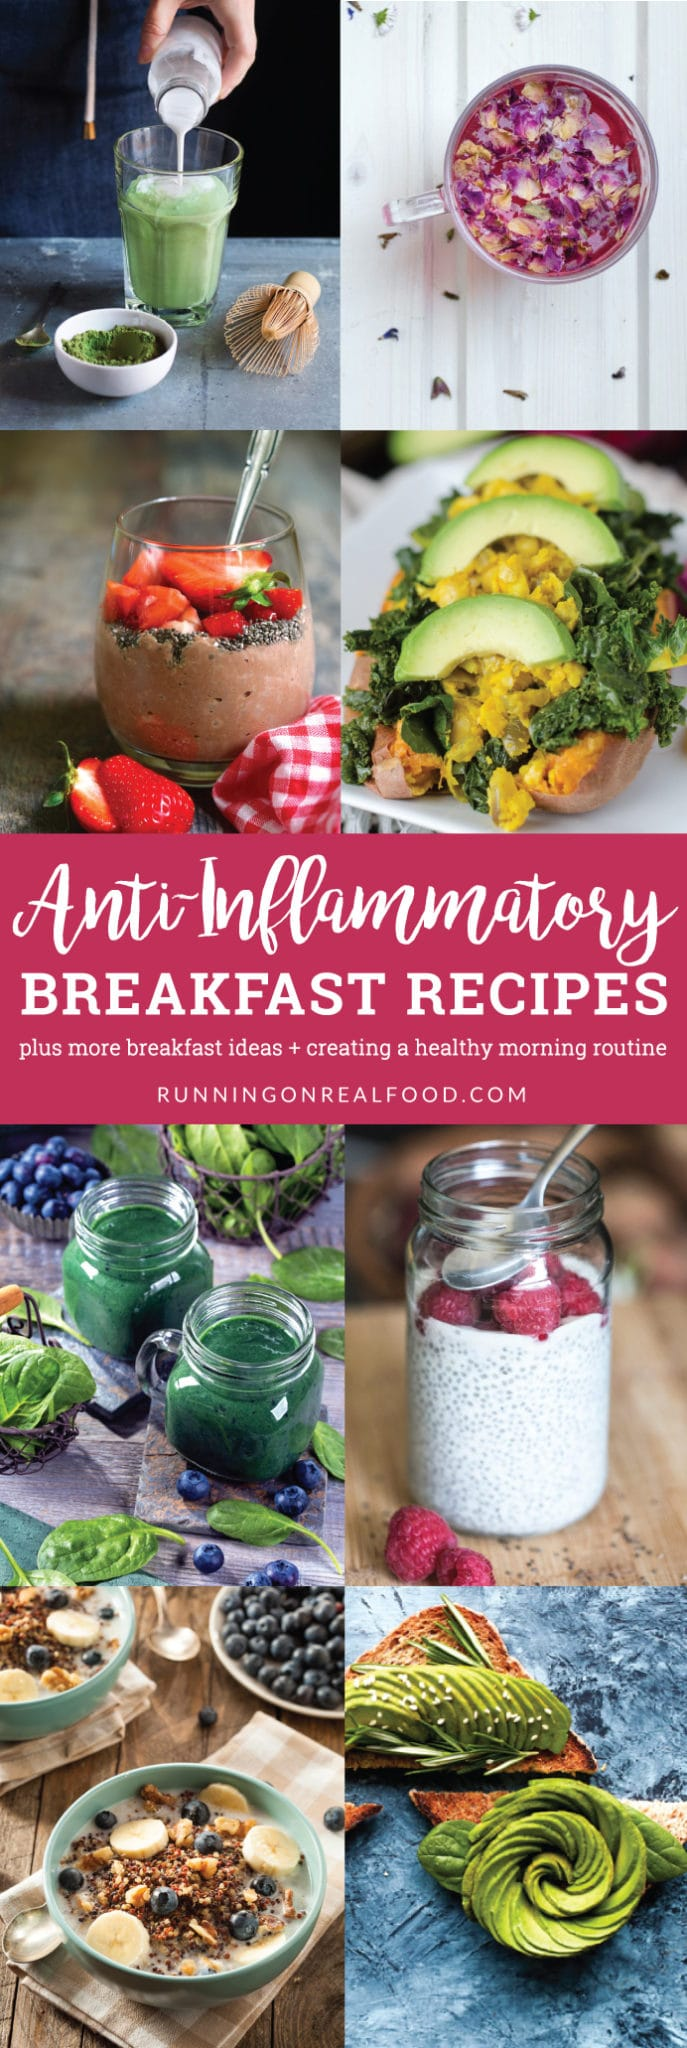 Reduce stress, boost energy and heal inflammation with a healthy morning routine and one of these easy, delicious, anti-inflammatory breakfast recipes. 4 easy, healthy vegan recipes plus plenty of more ideas for no-recipe needed creations.